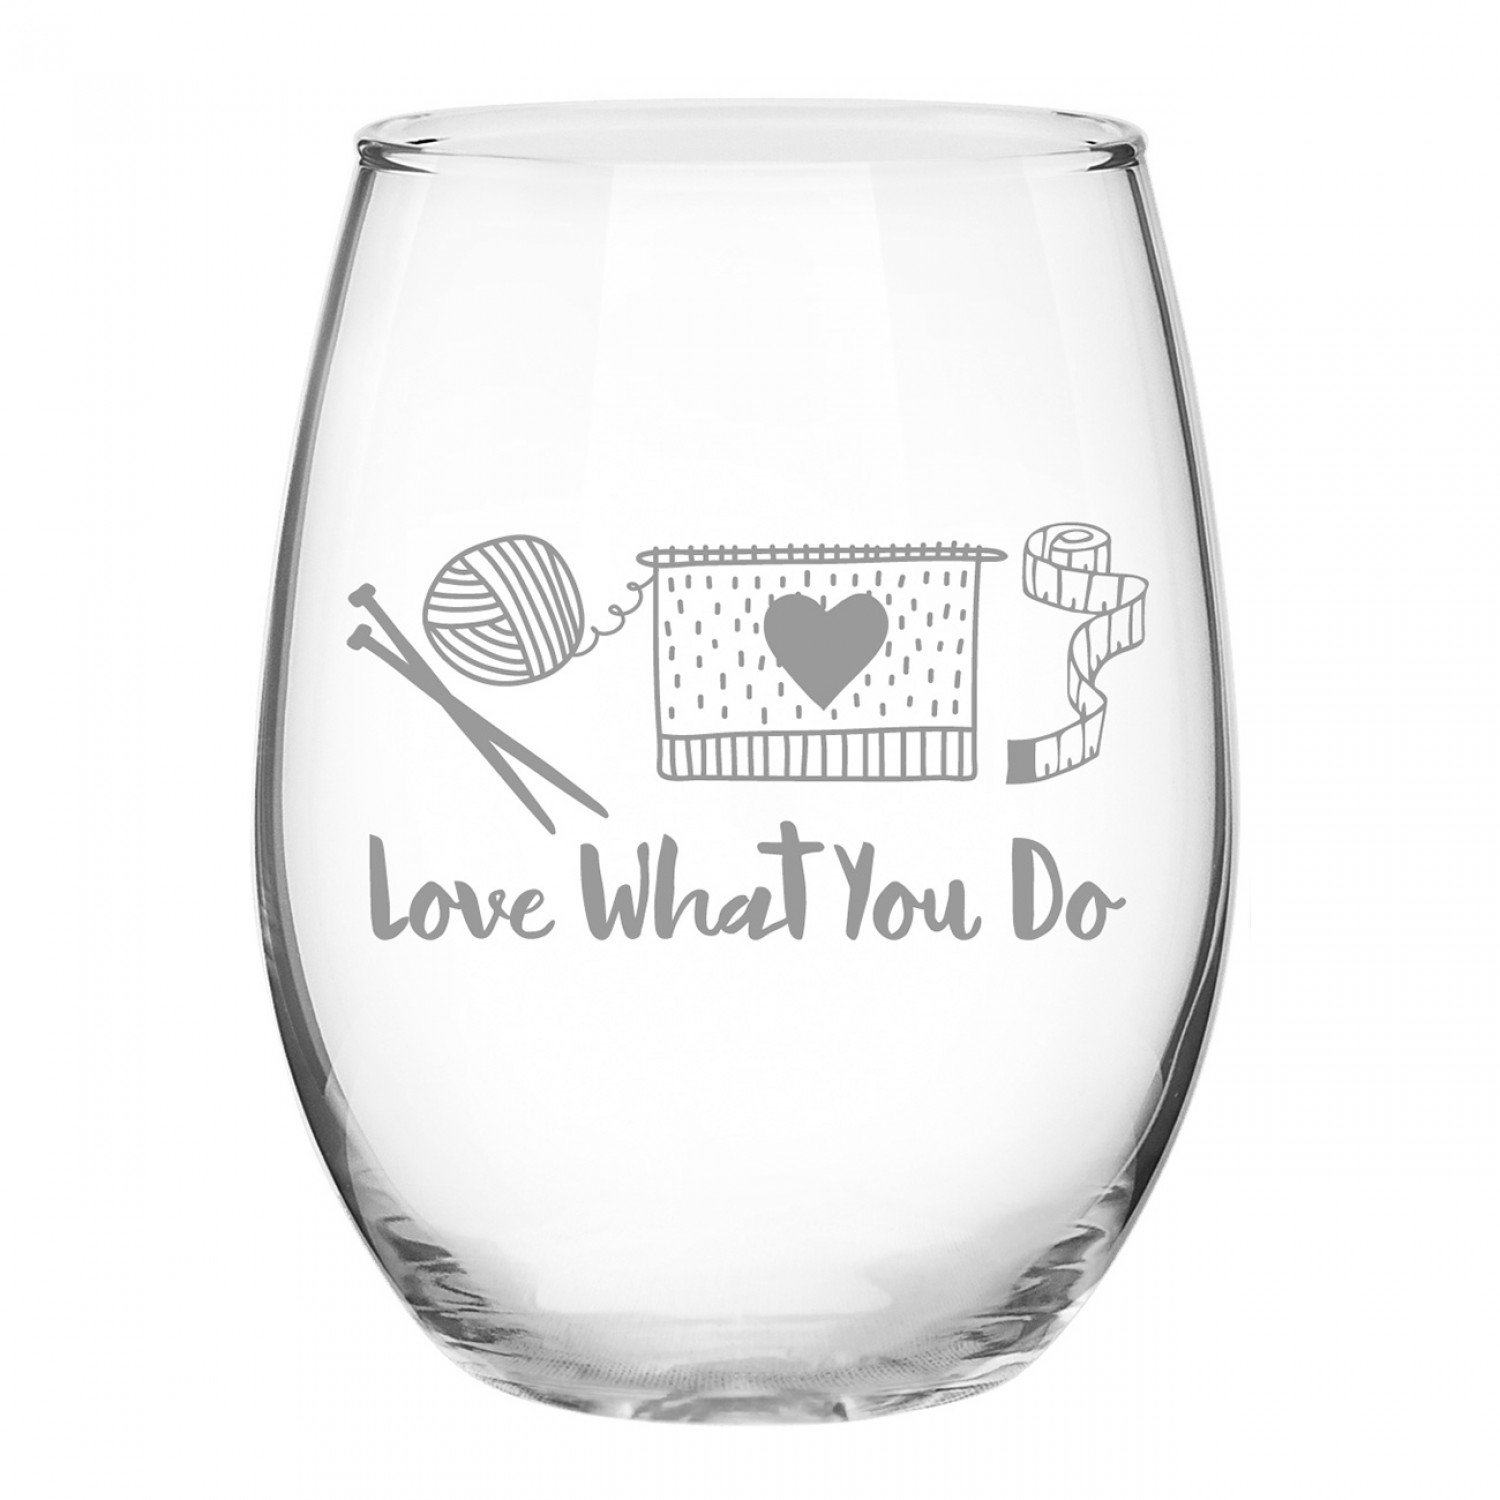 Knit Happy Love What You Do Stemless Wine Glass